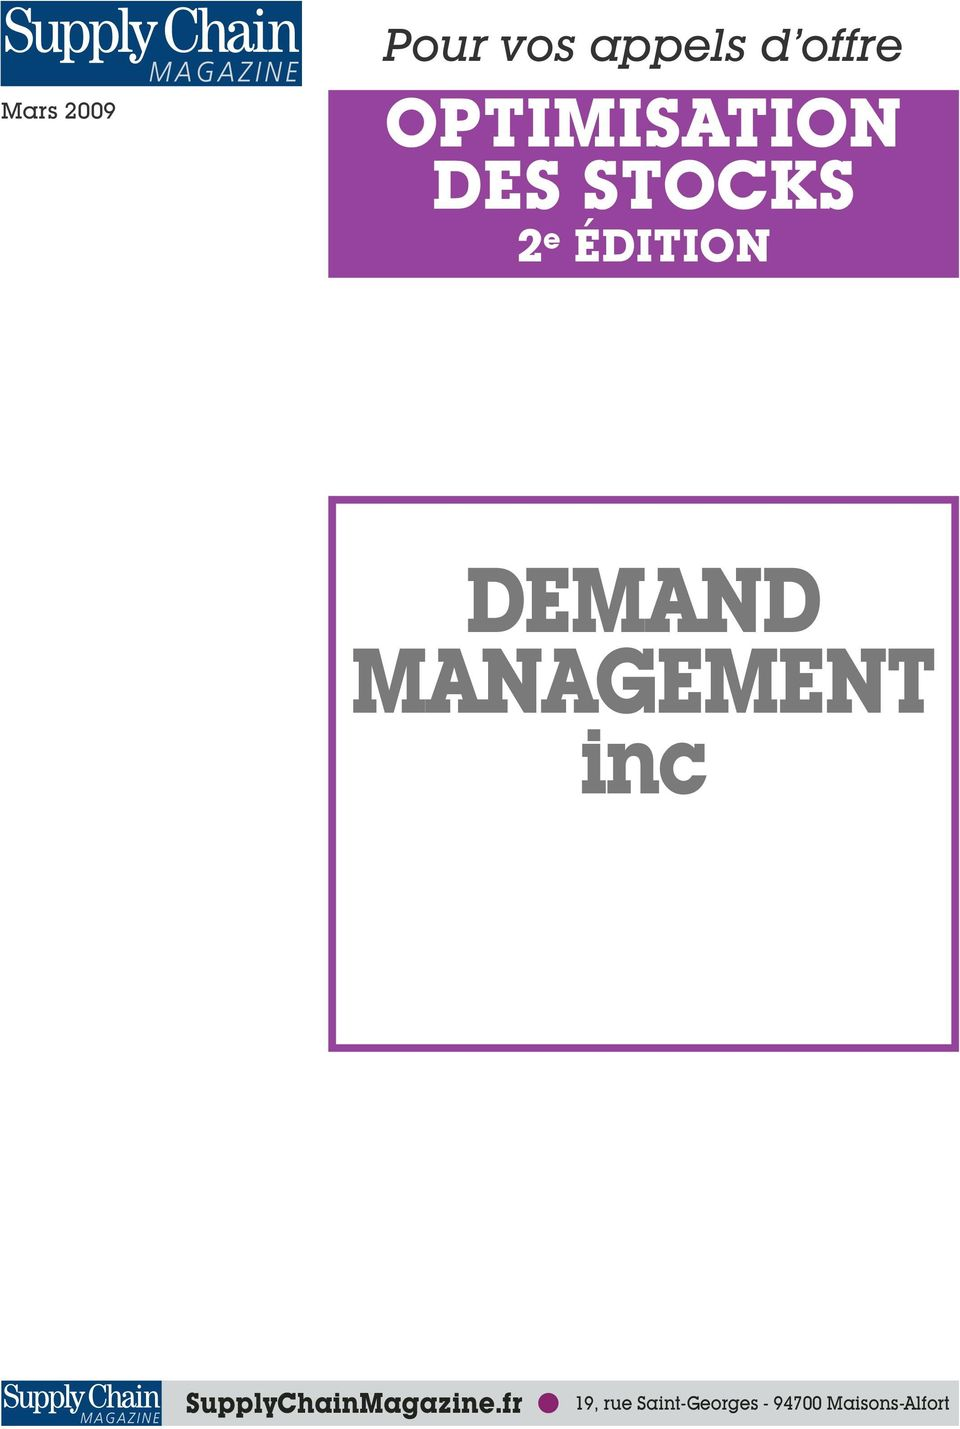 DEMAND MANAGEMENT inc